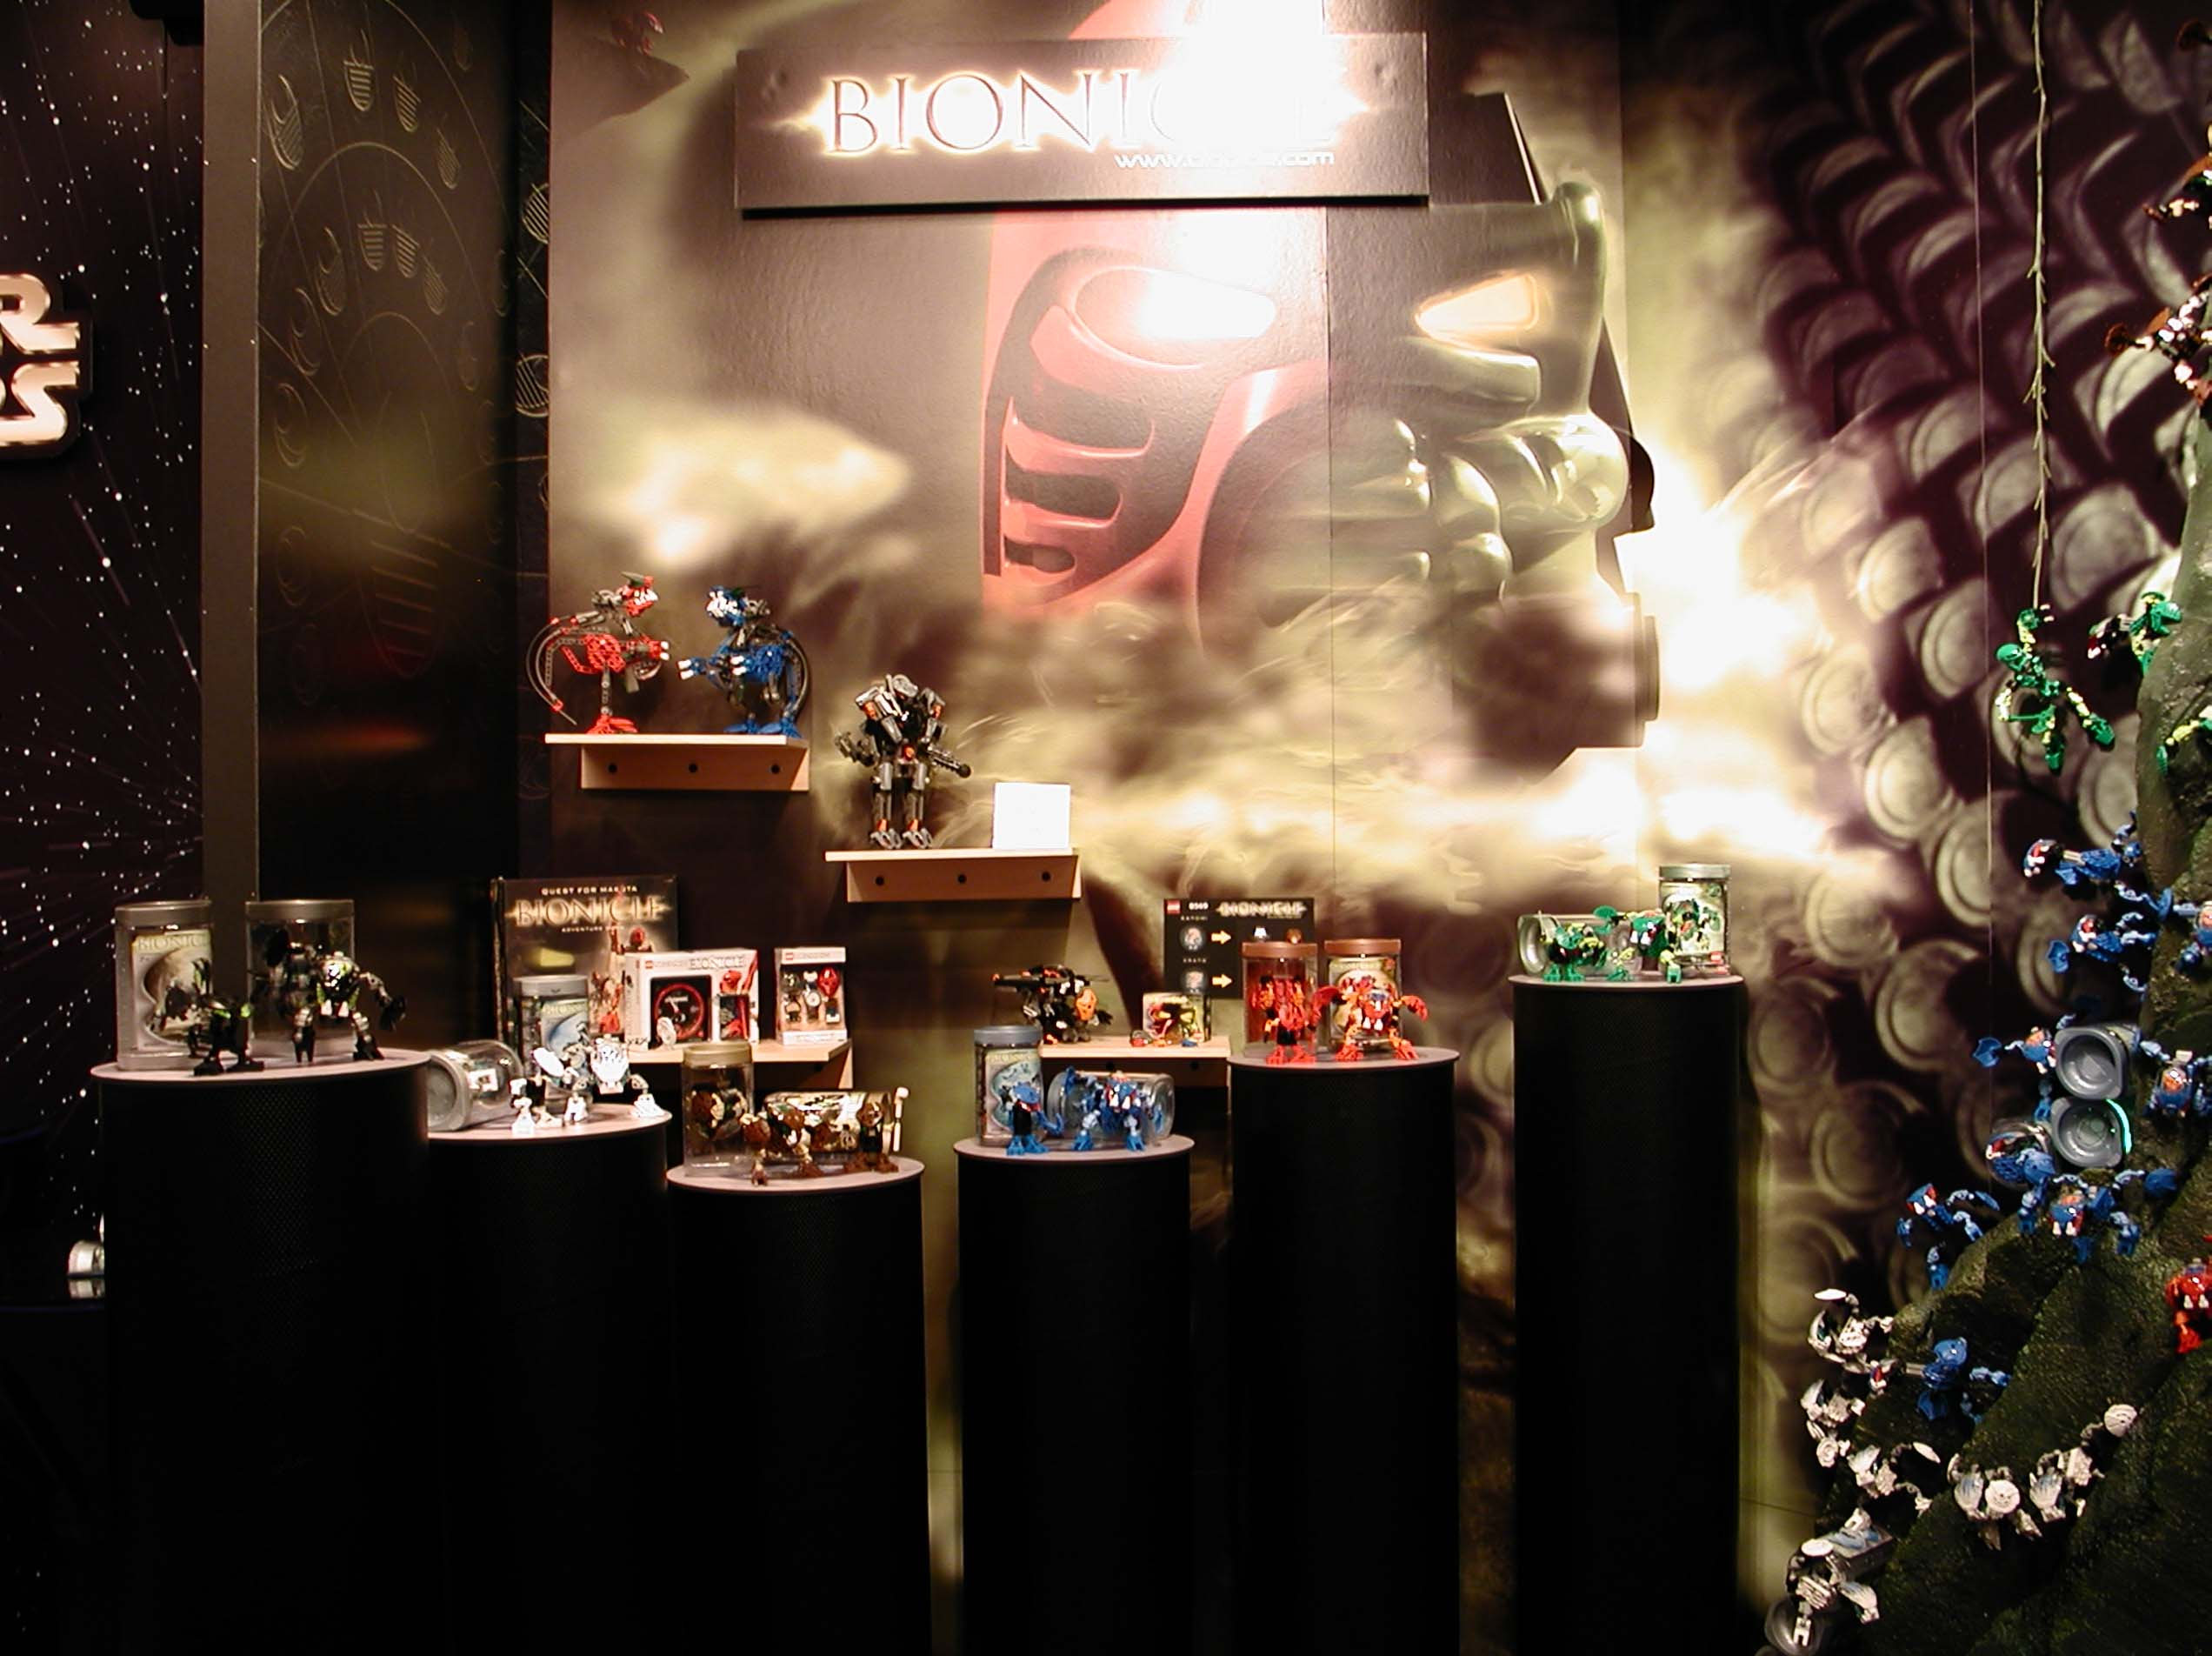 02_toyfair_display_02.jpg